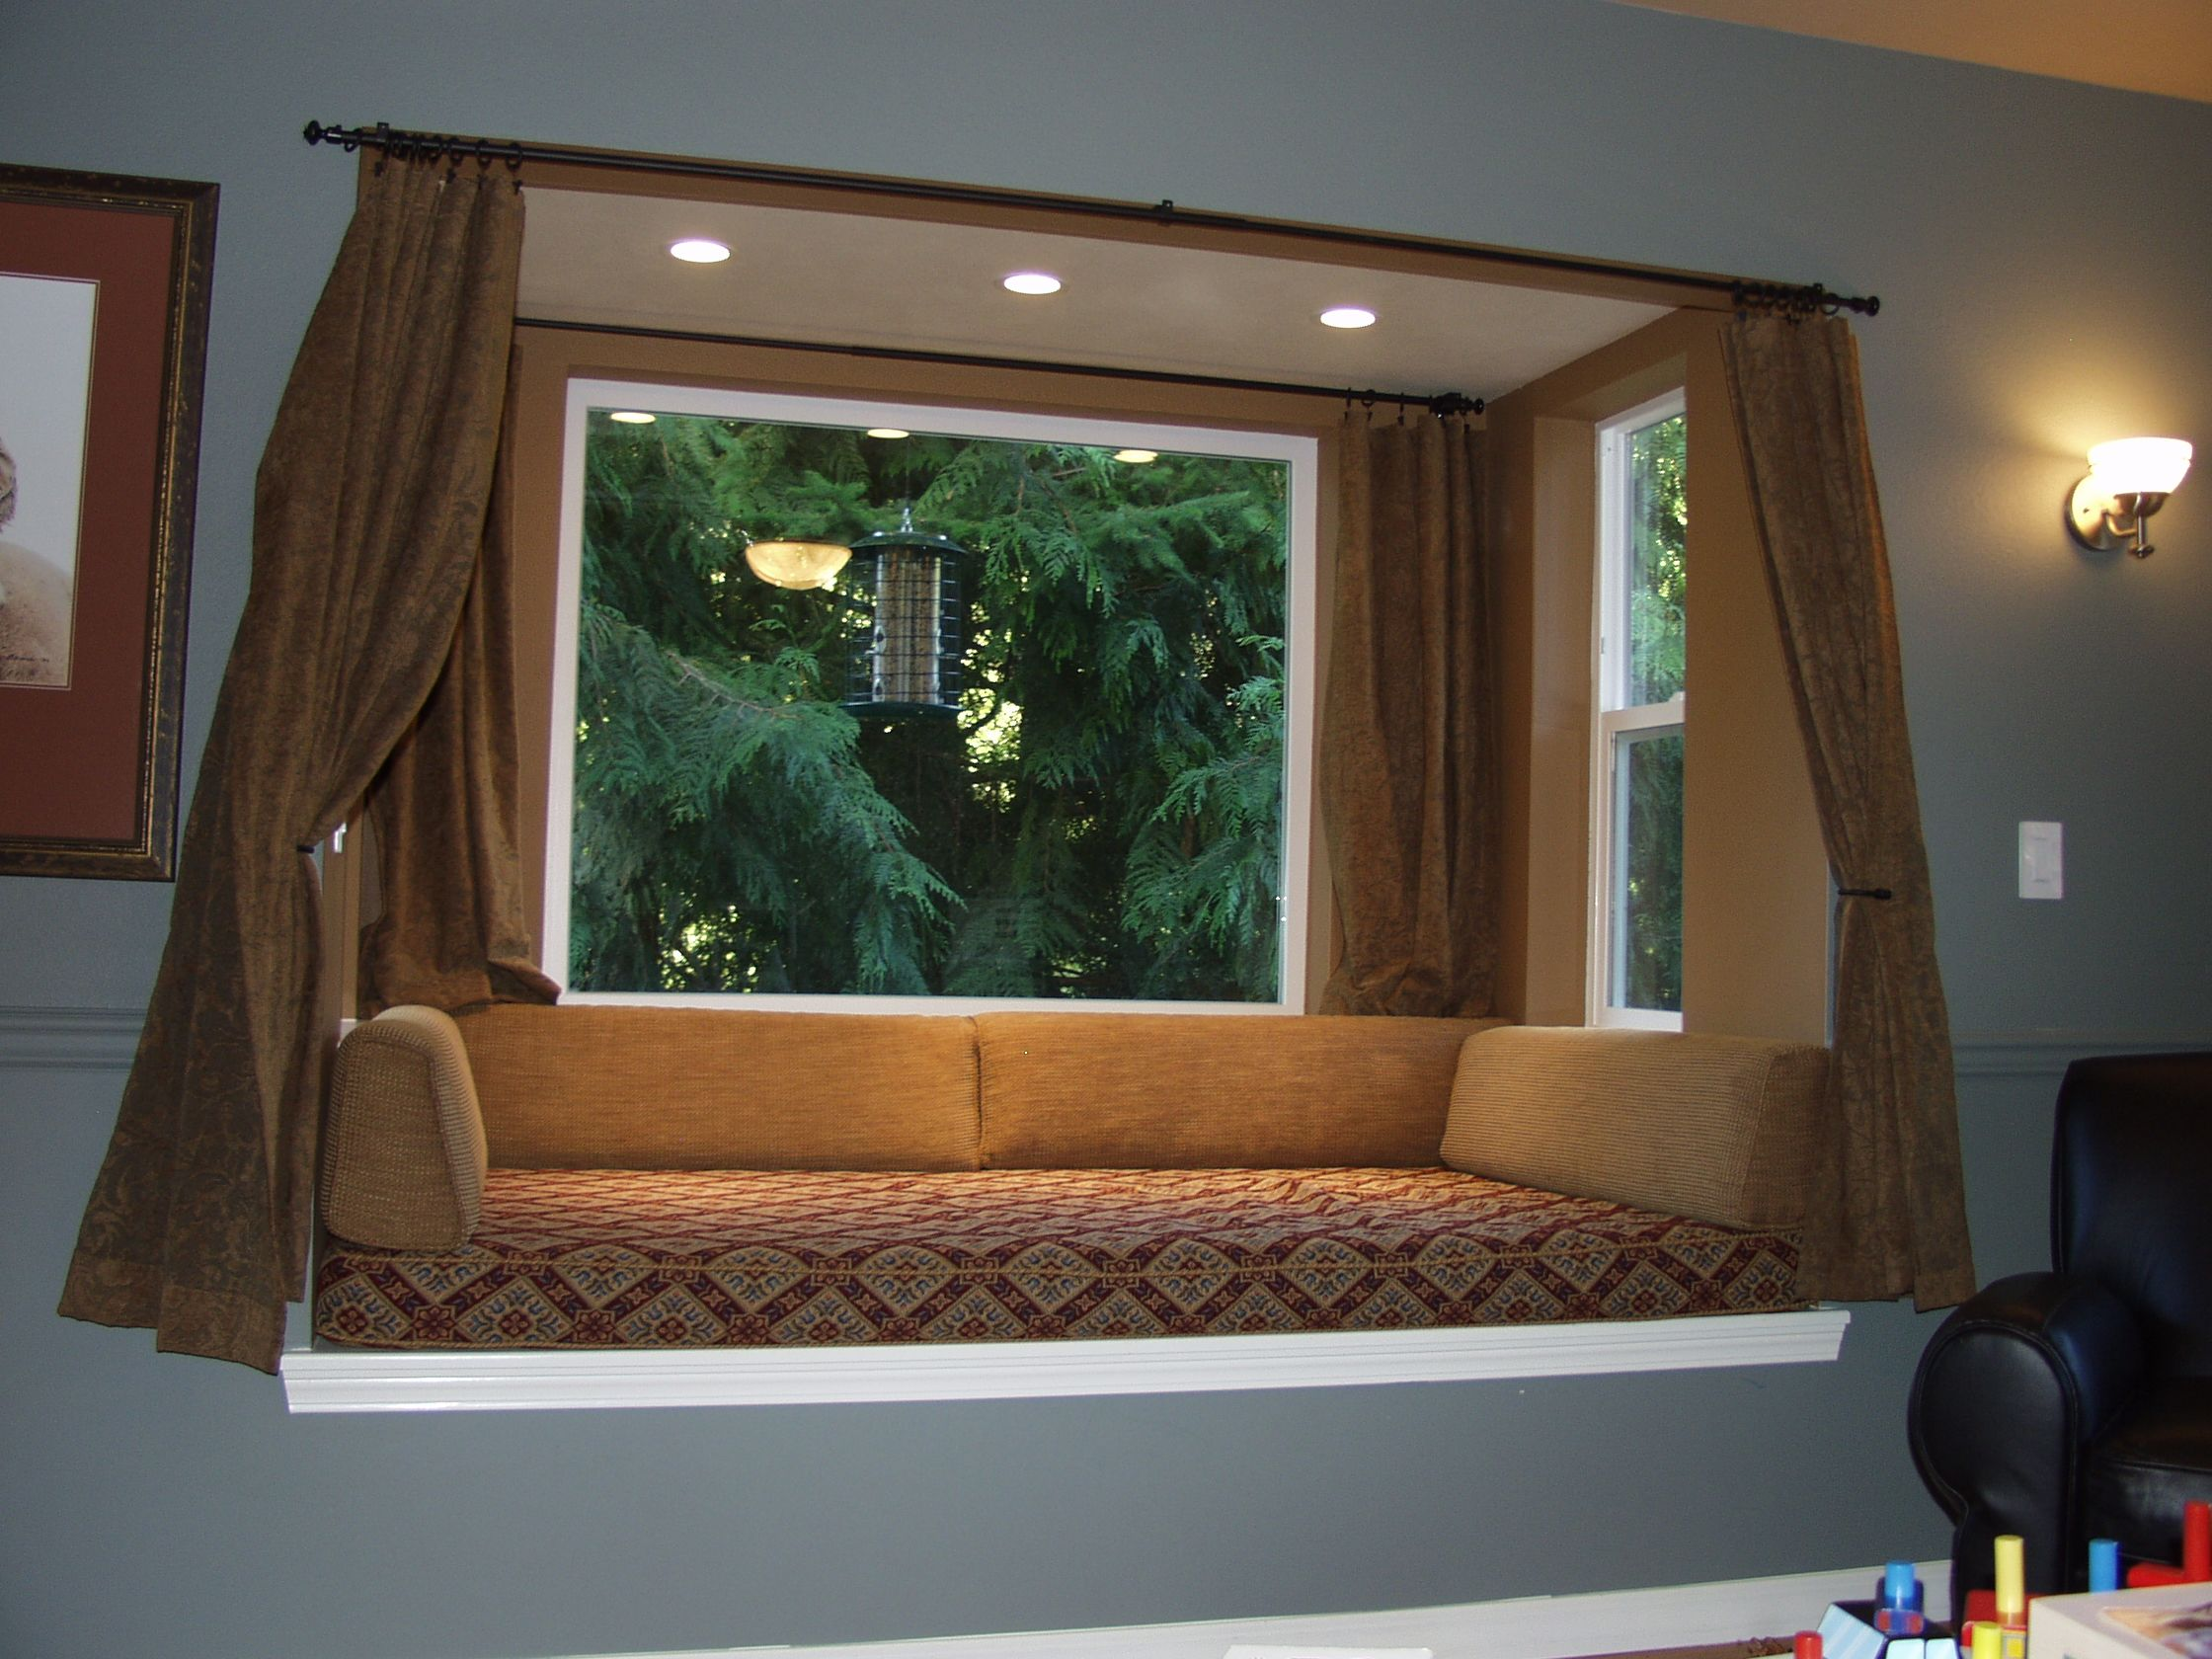 Image Result For Window Seat Bay Window Living Room Window Seat Design Bay Window Design